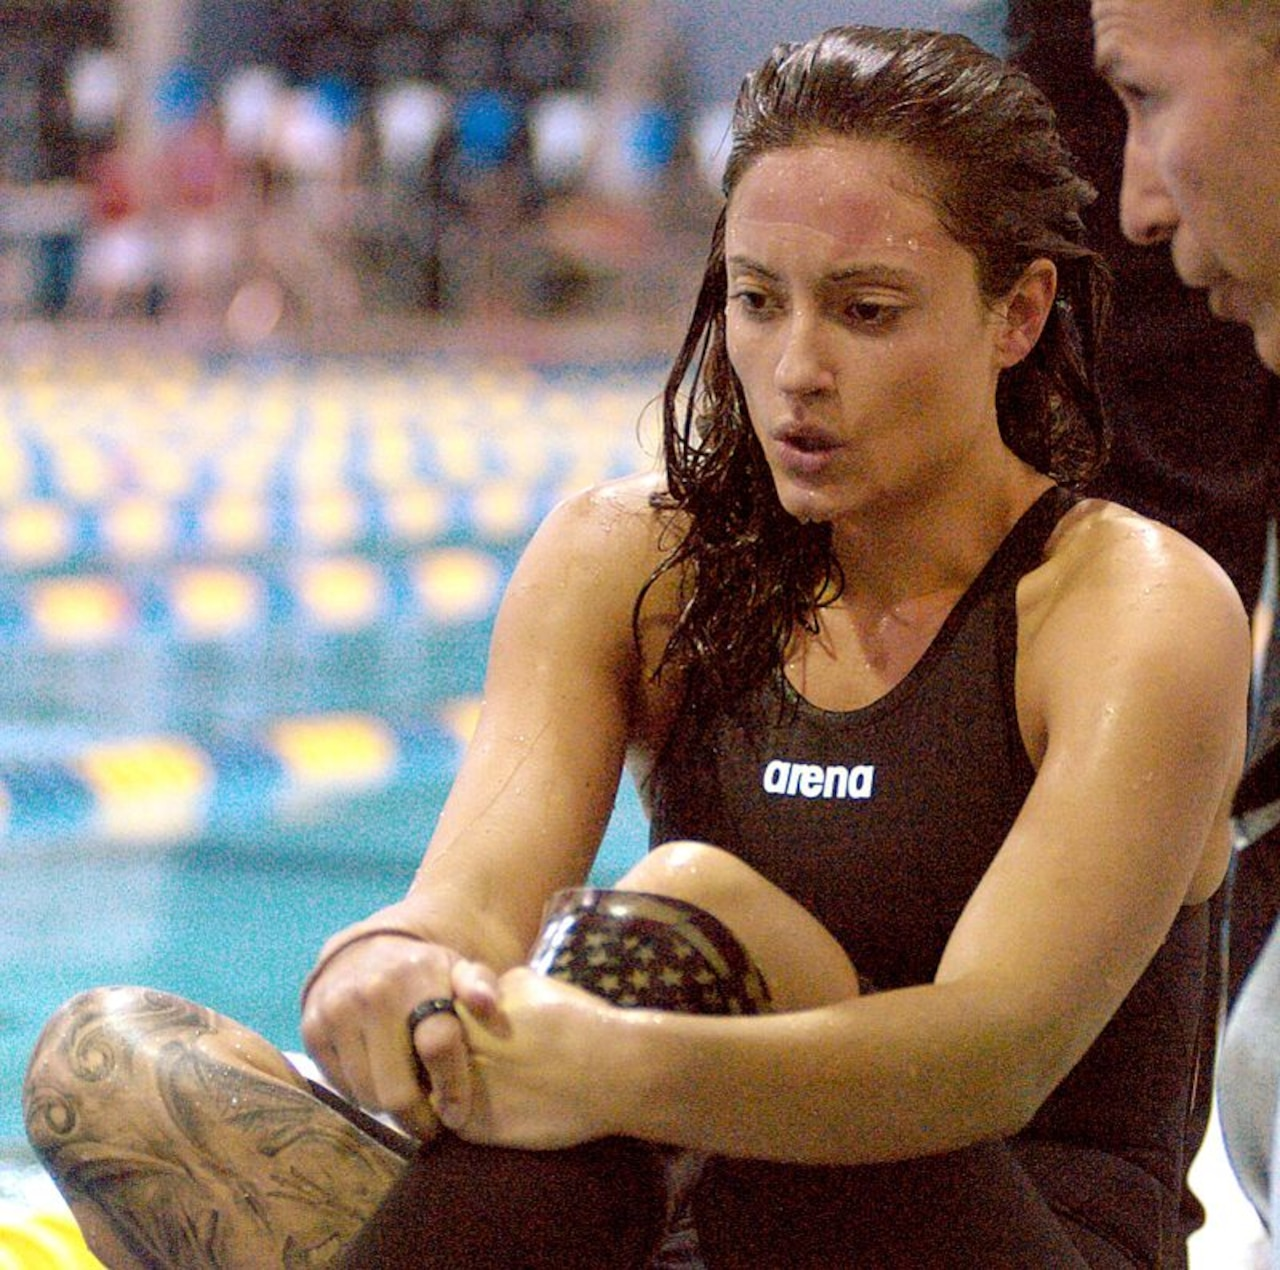 A female swimming athlete sits next to a pool.